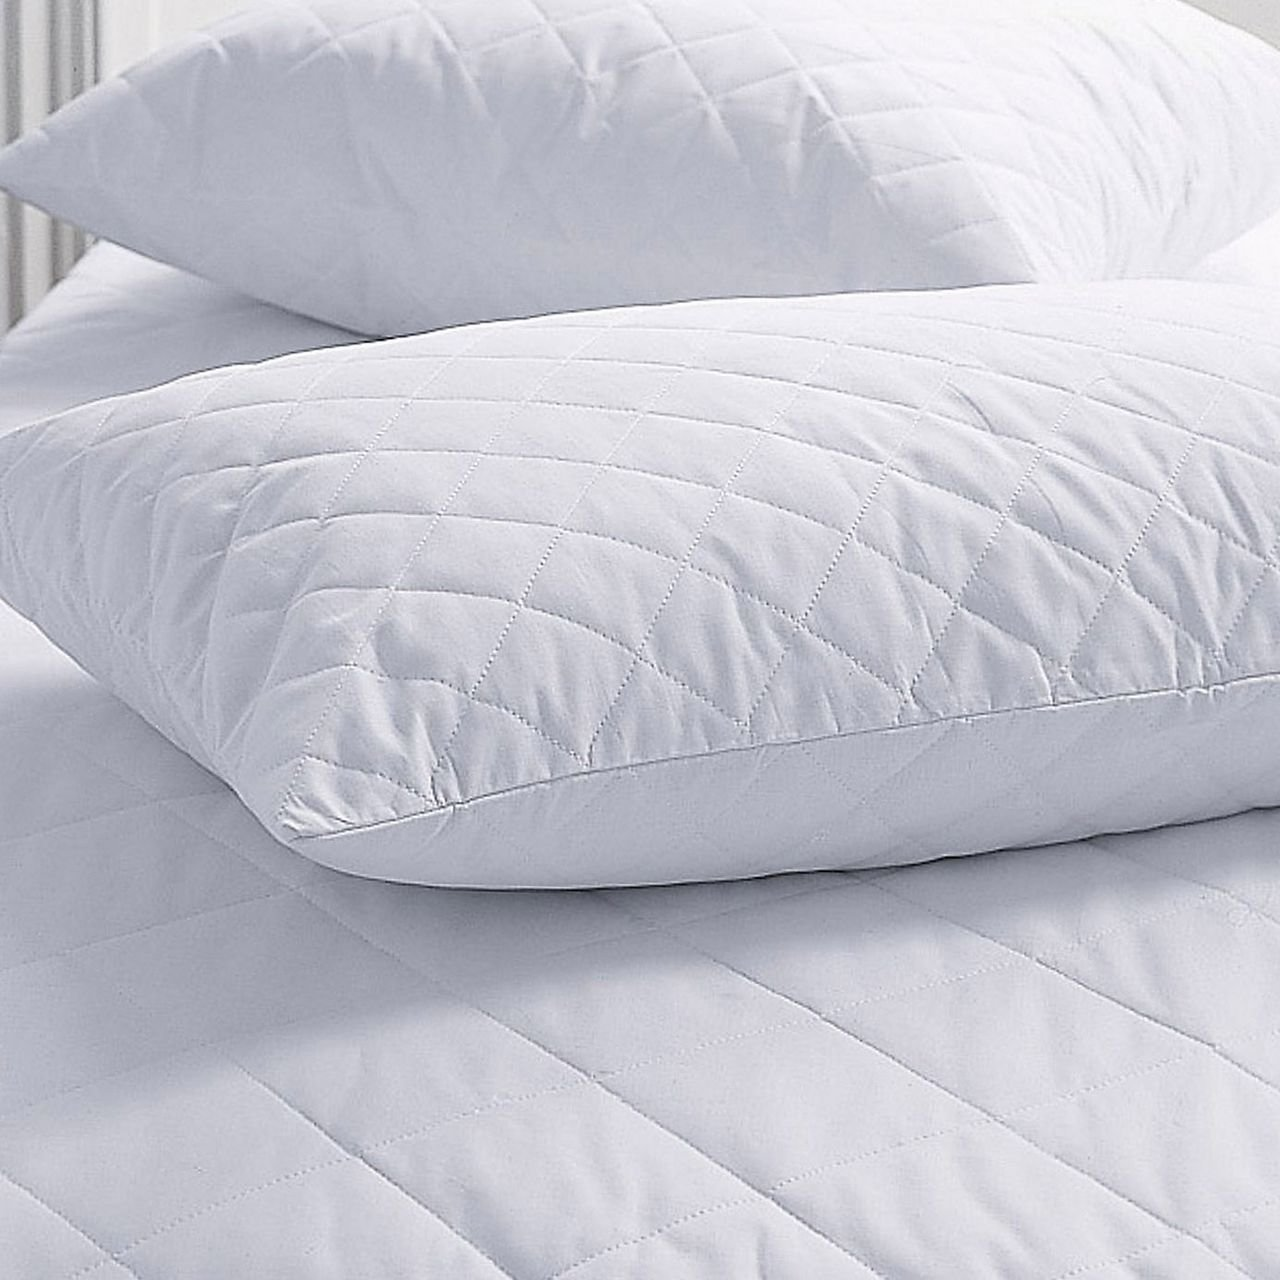 Amazon.com: SET OF 2 NEW ZIPPERED QUILTED PILLOW COVERS - STANDARD ... : quilted pillows - Adamdwight.com